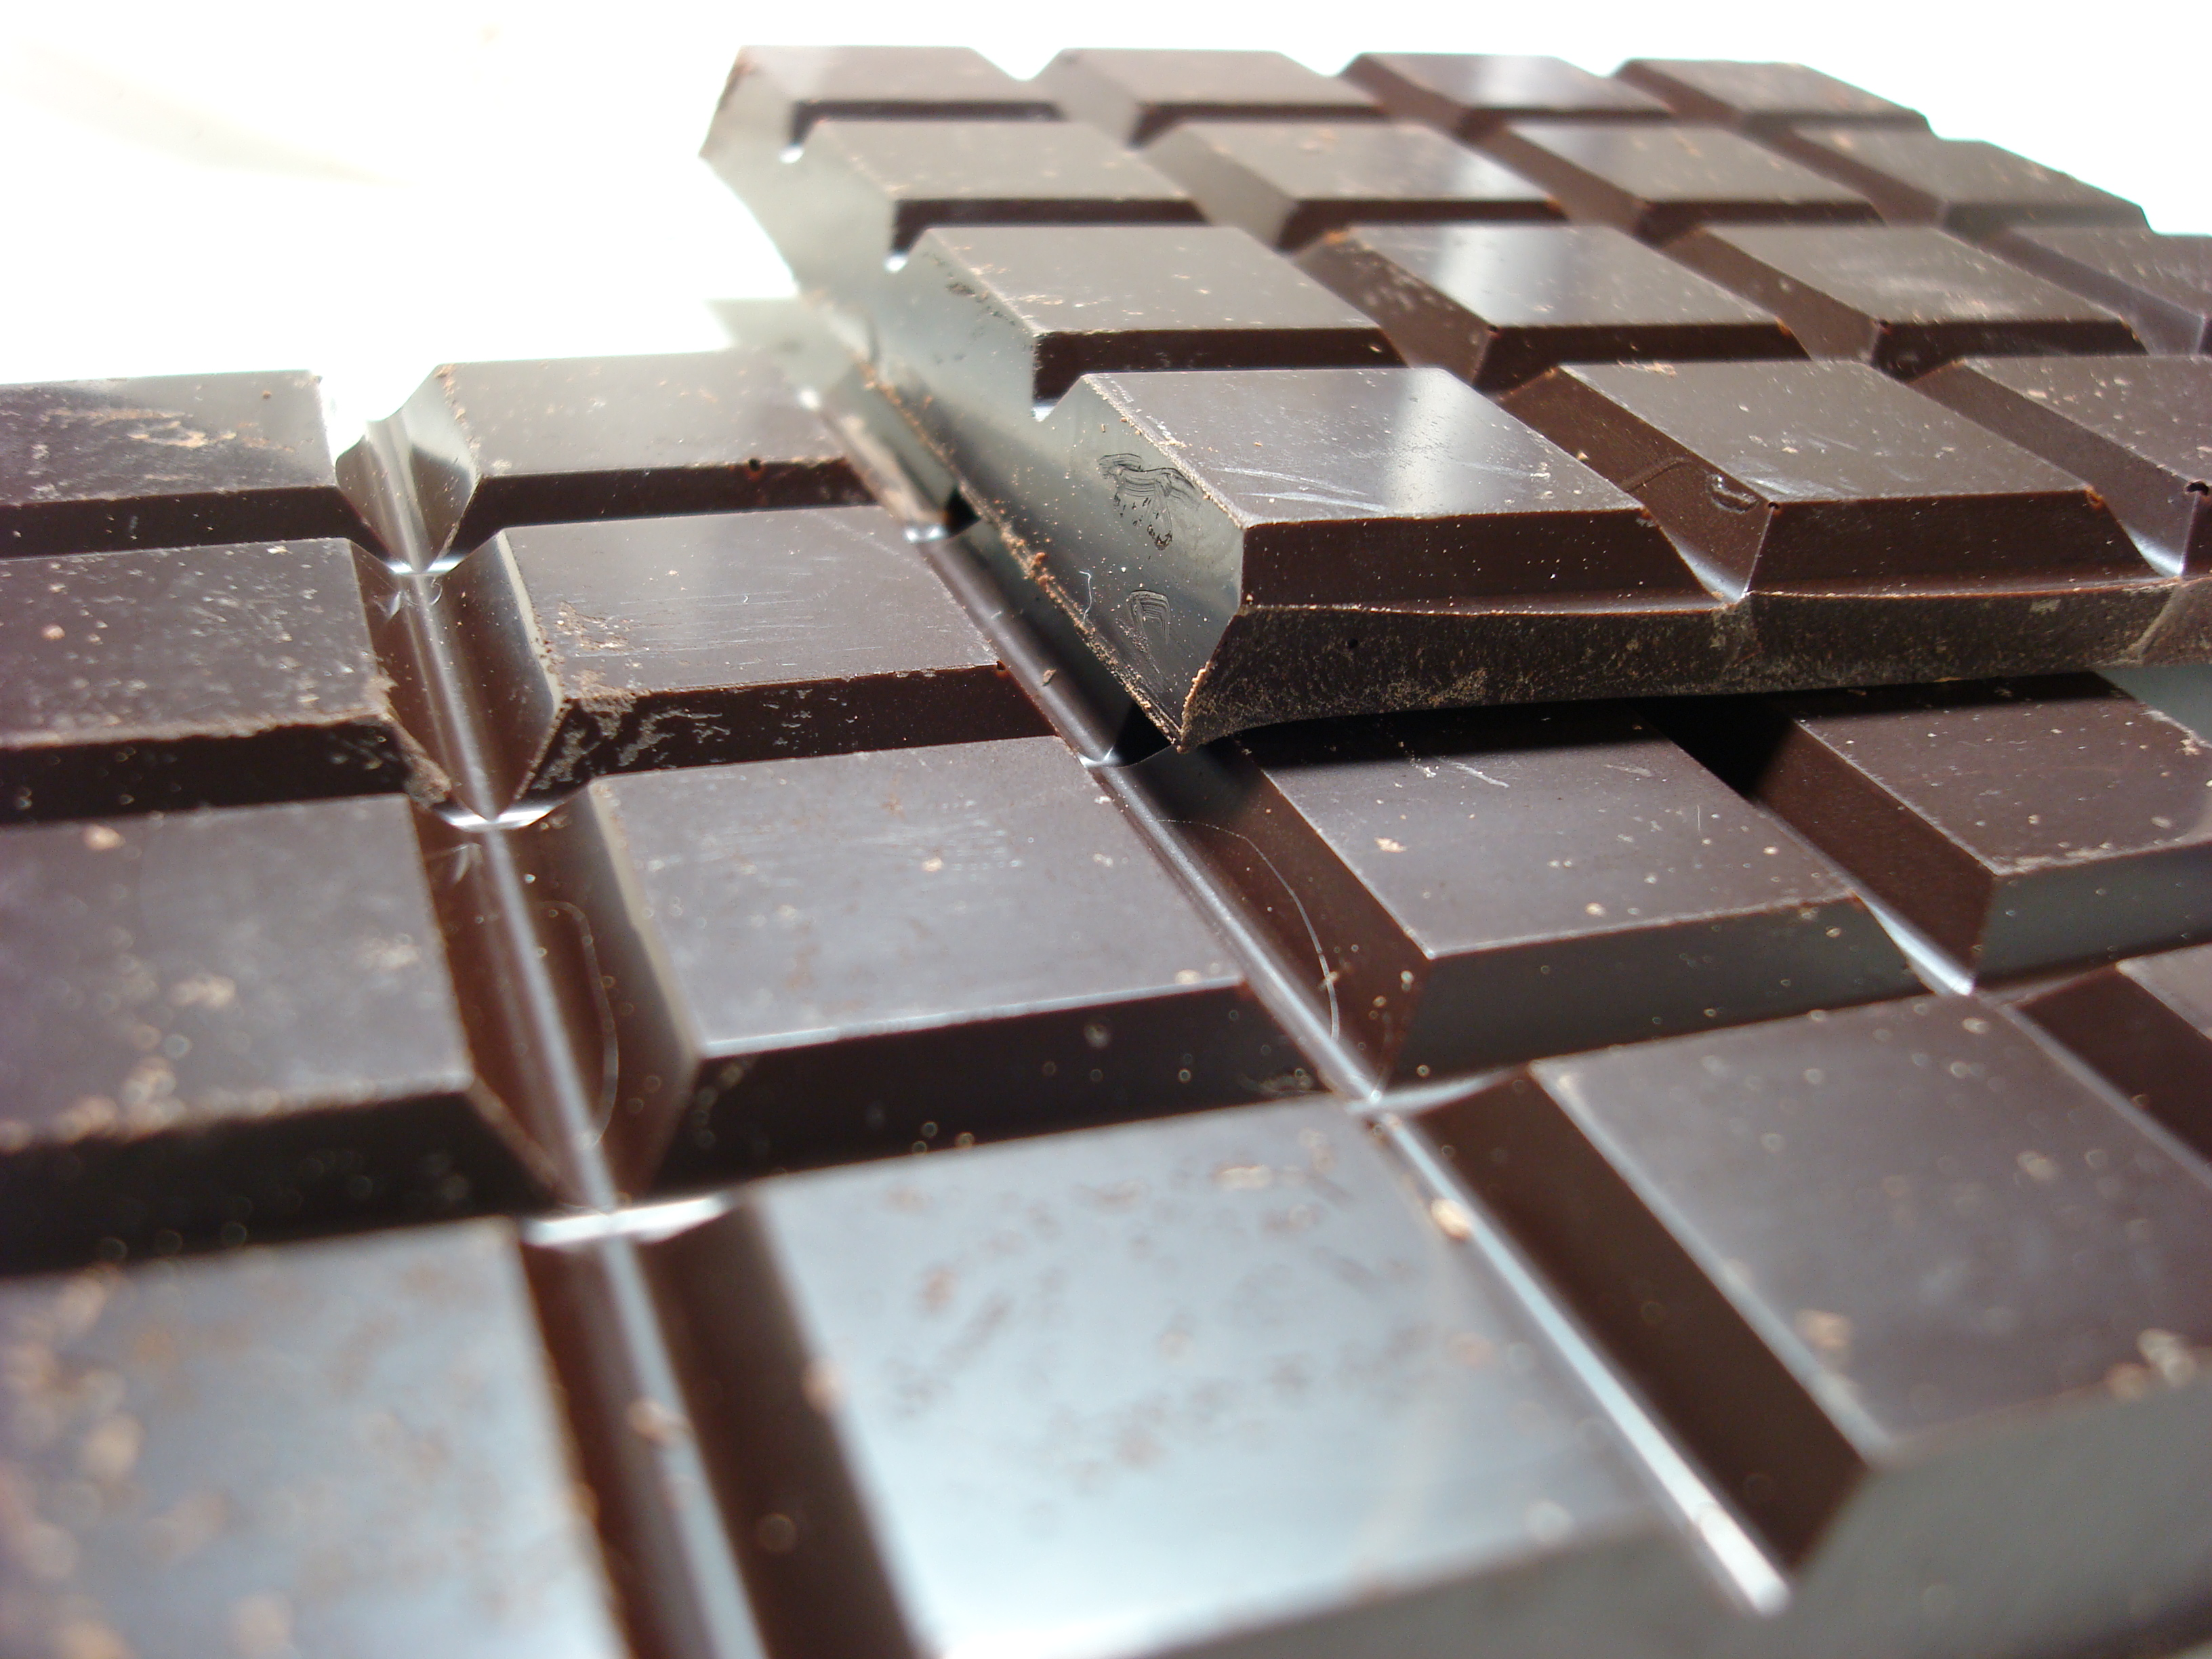 Does Chocolate cause Acne? | SiOWfa14 Science in Our World ...